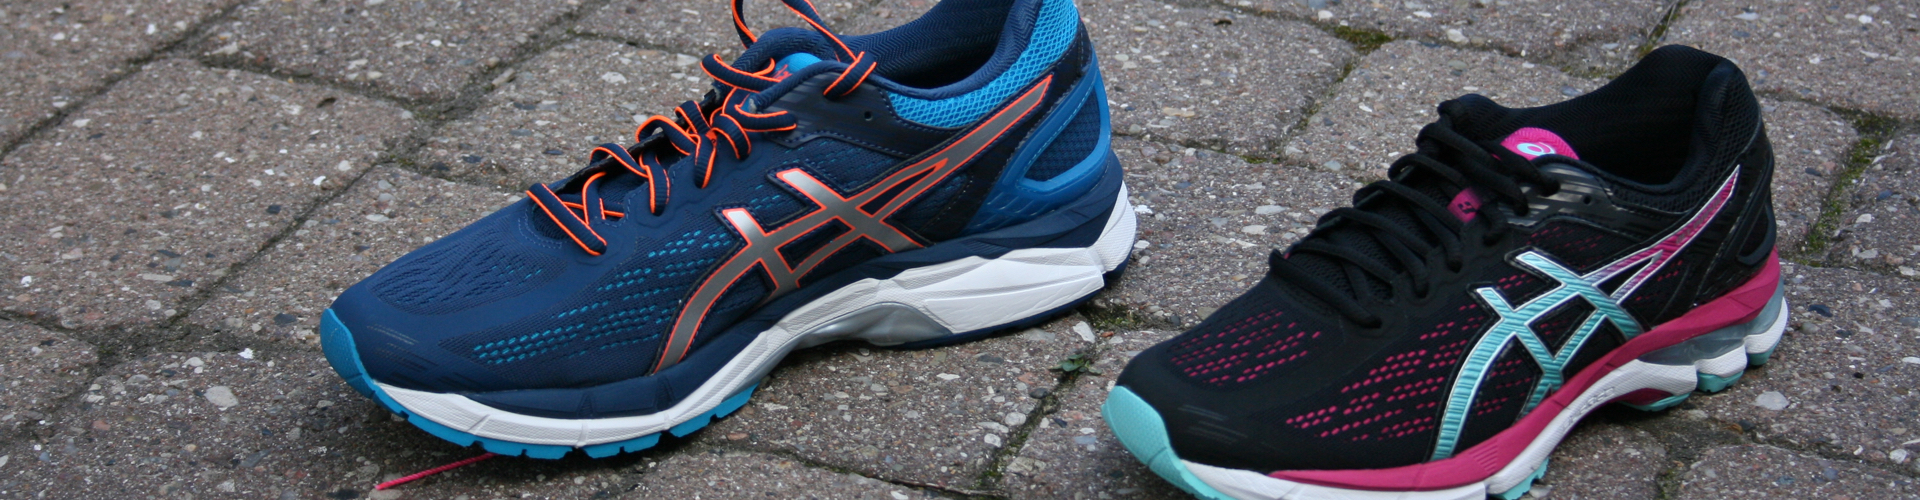 asics pursue 3 dames